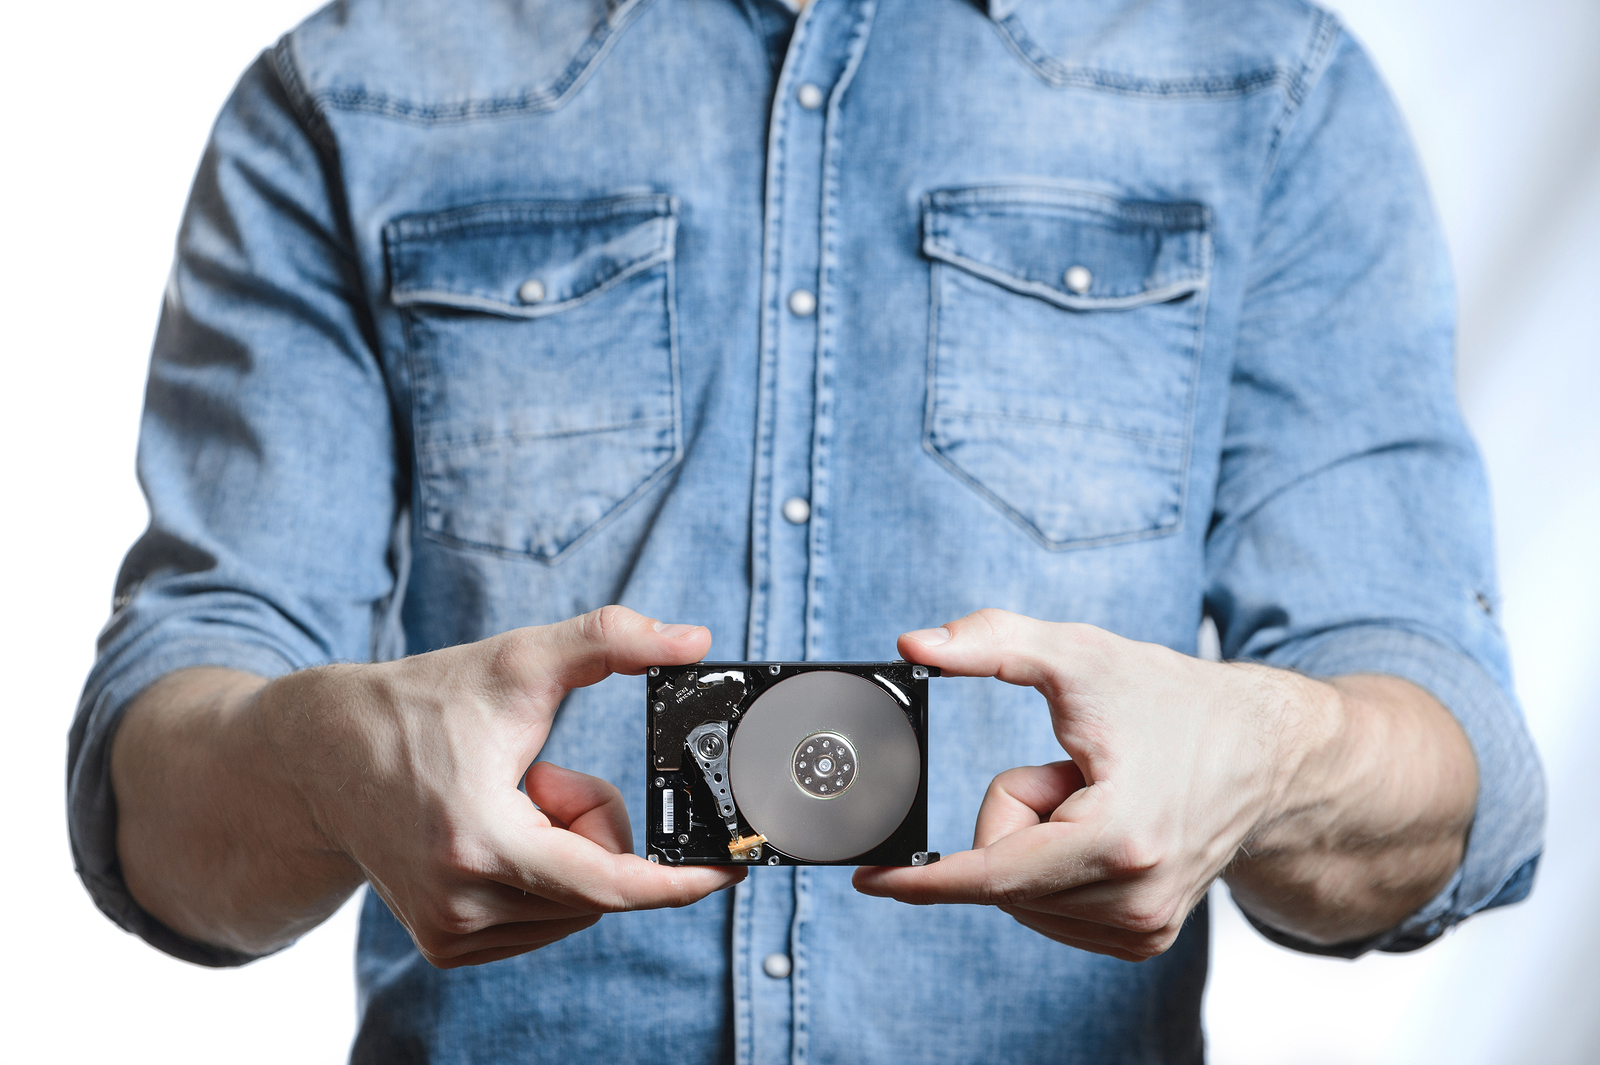 How to Extend Your Hard Drive's Life to Make it Last Longer